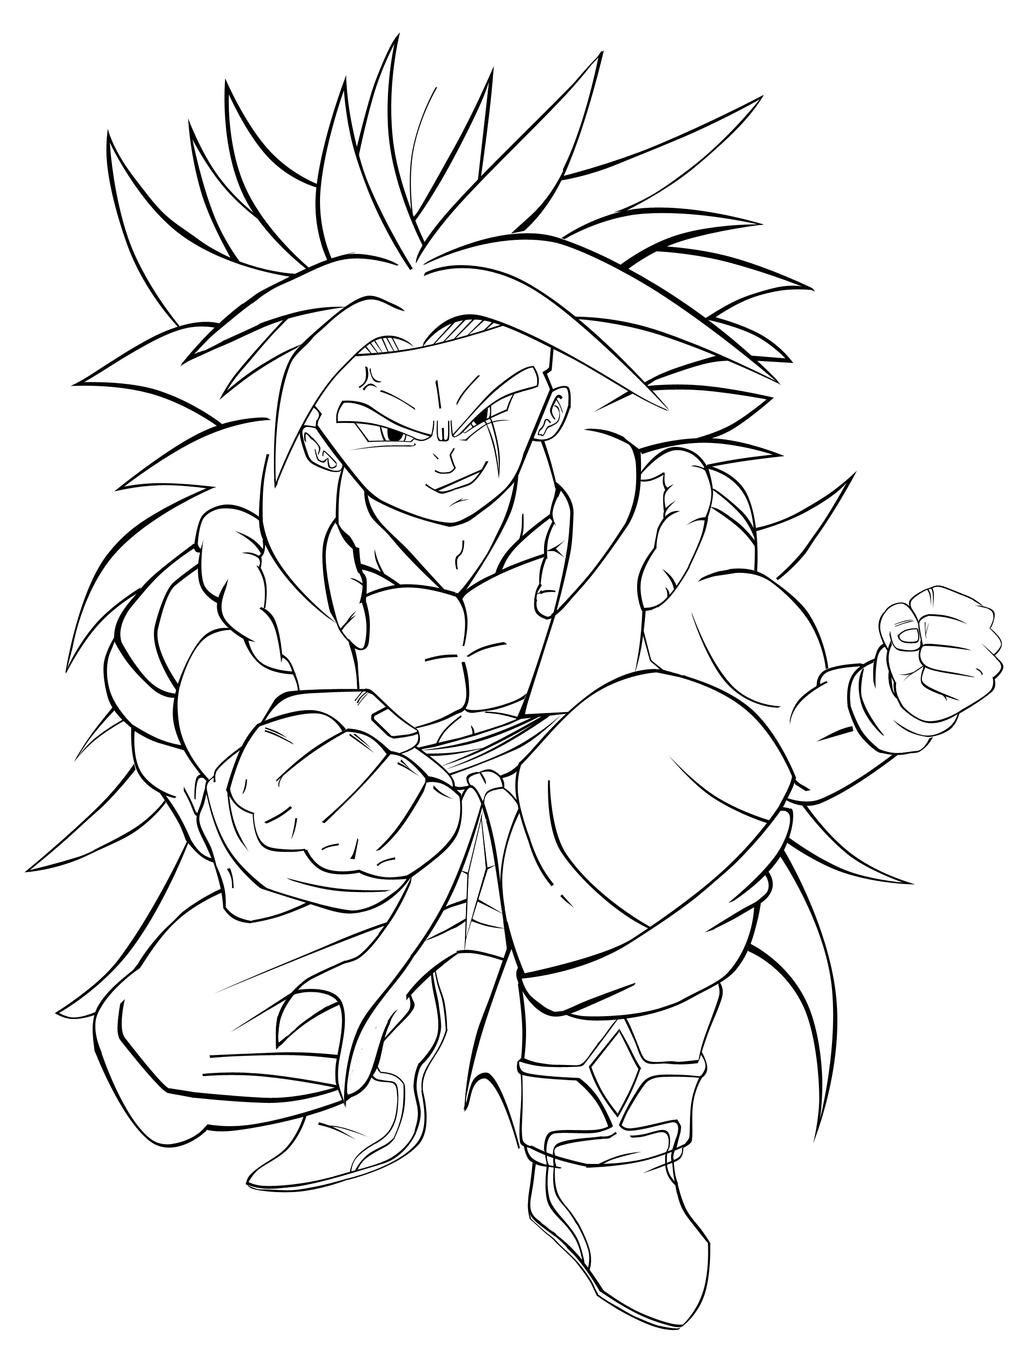 dbz oc nominee84 contest by brolyfullpower on deviantart